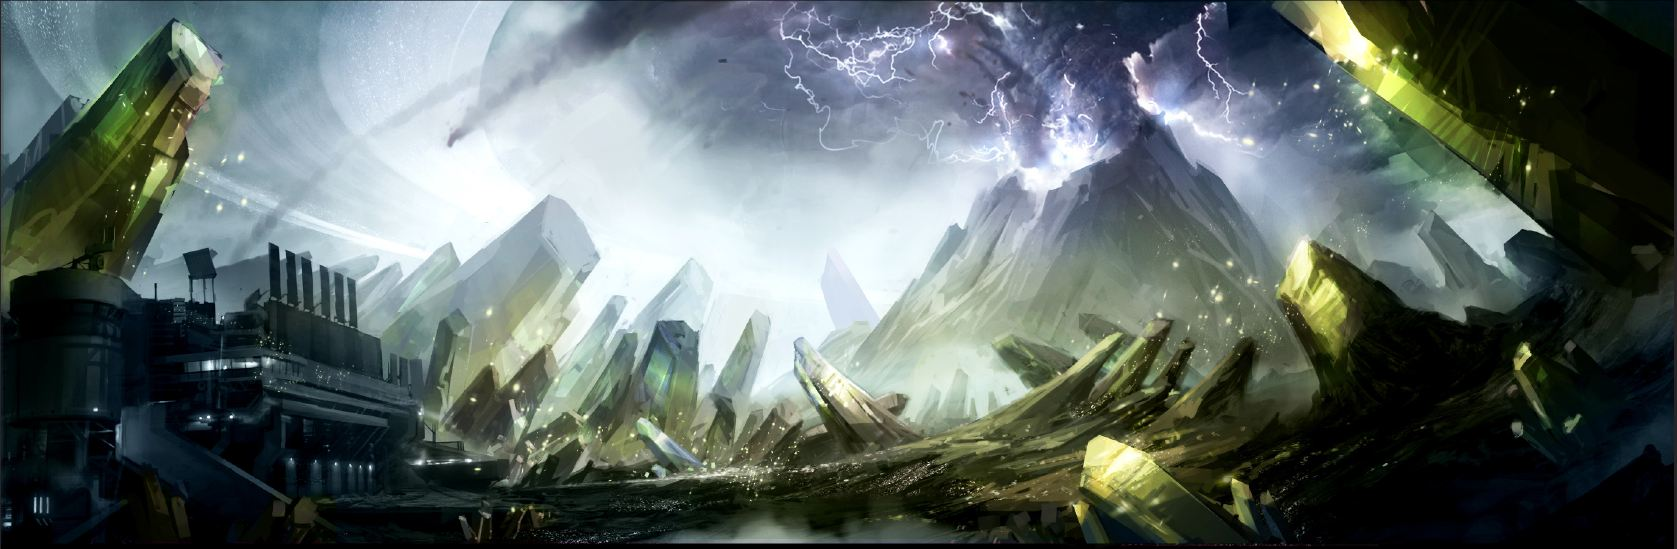 Halo4 October24th